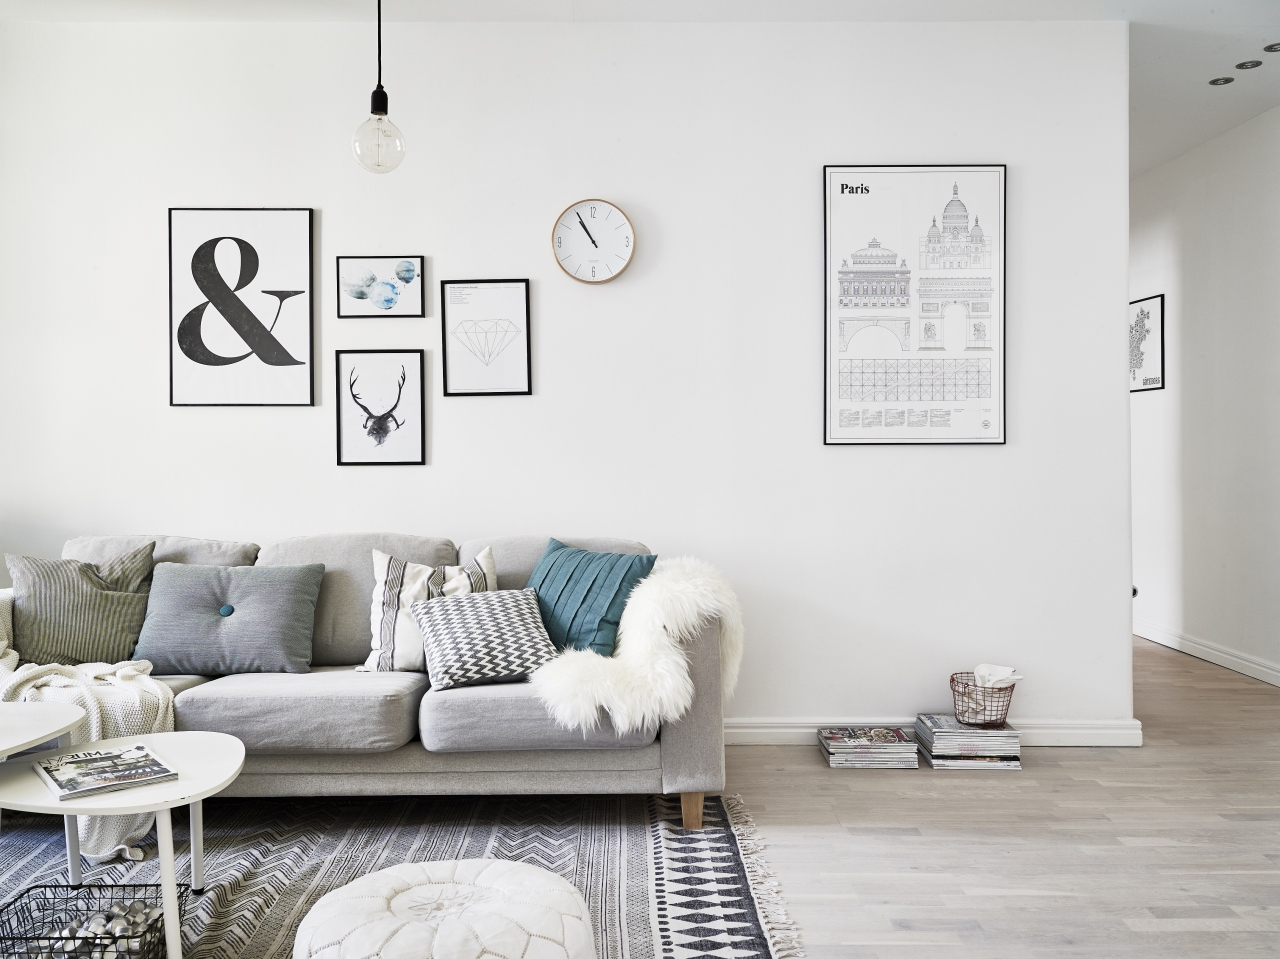 Tips For Creating A Scandinavian Living Room: 7 Ideas To Make A Note Of